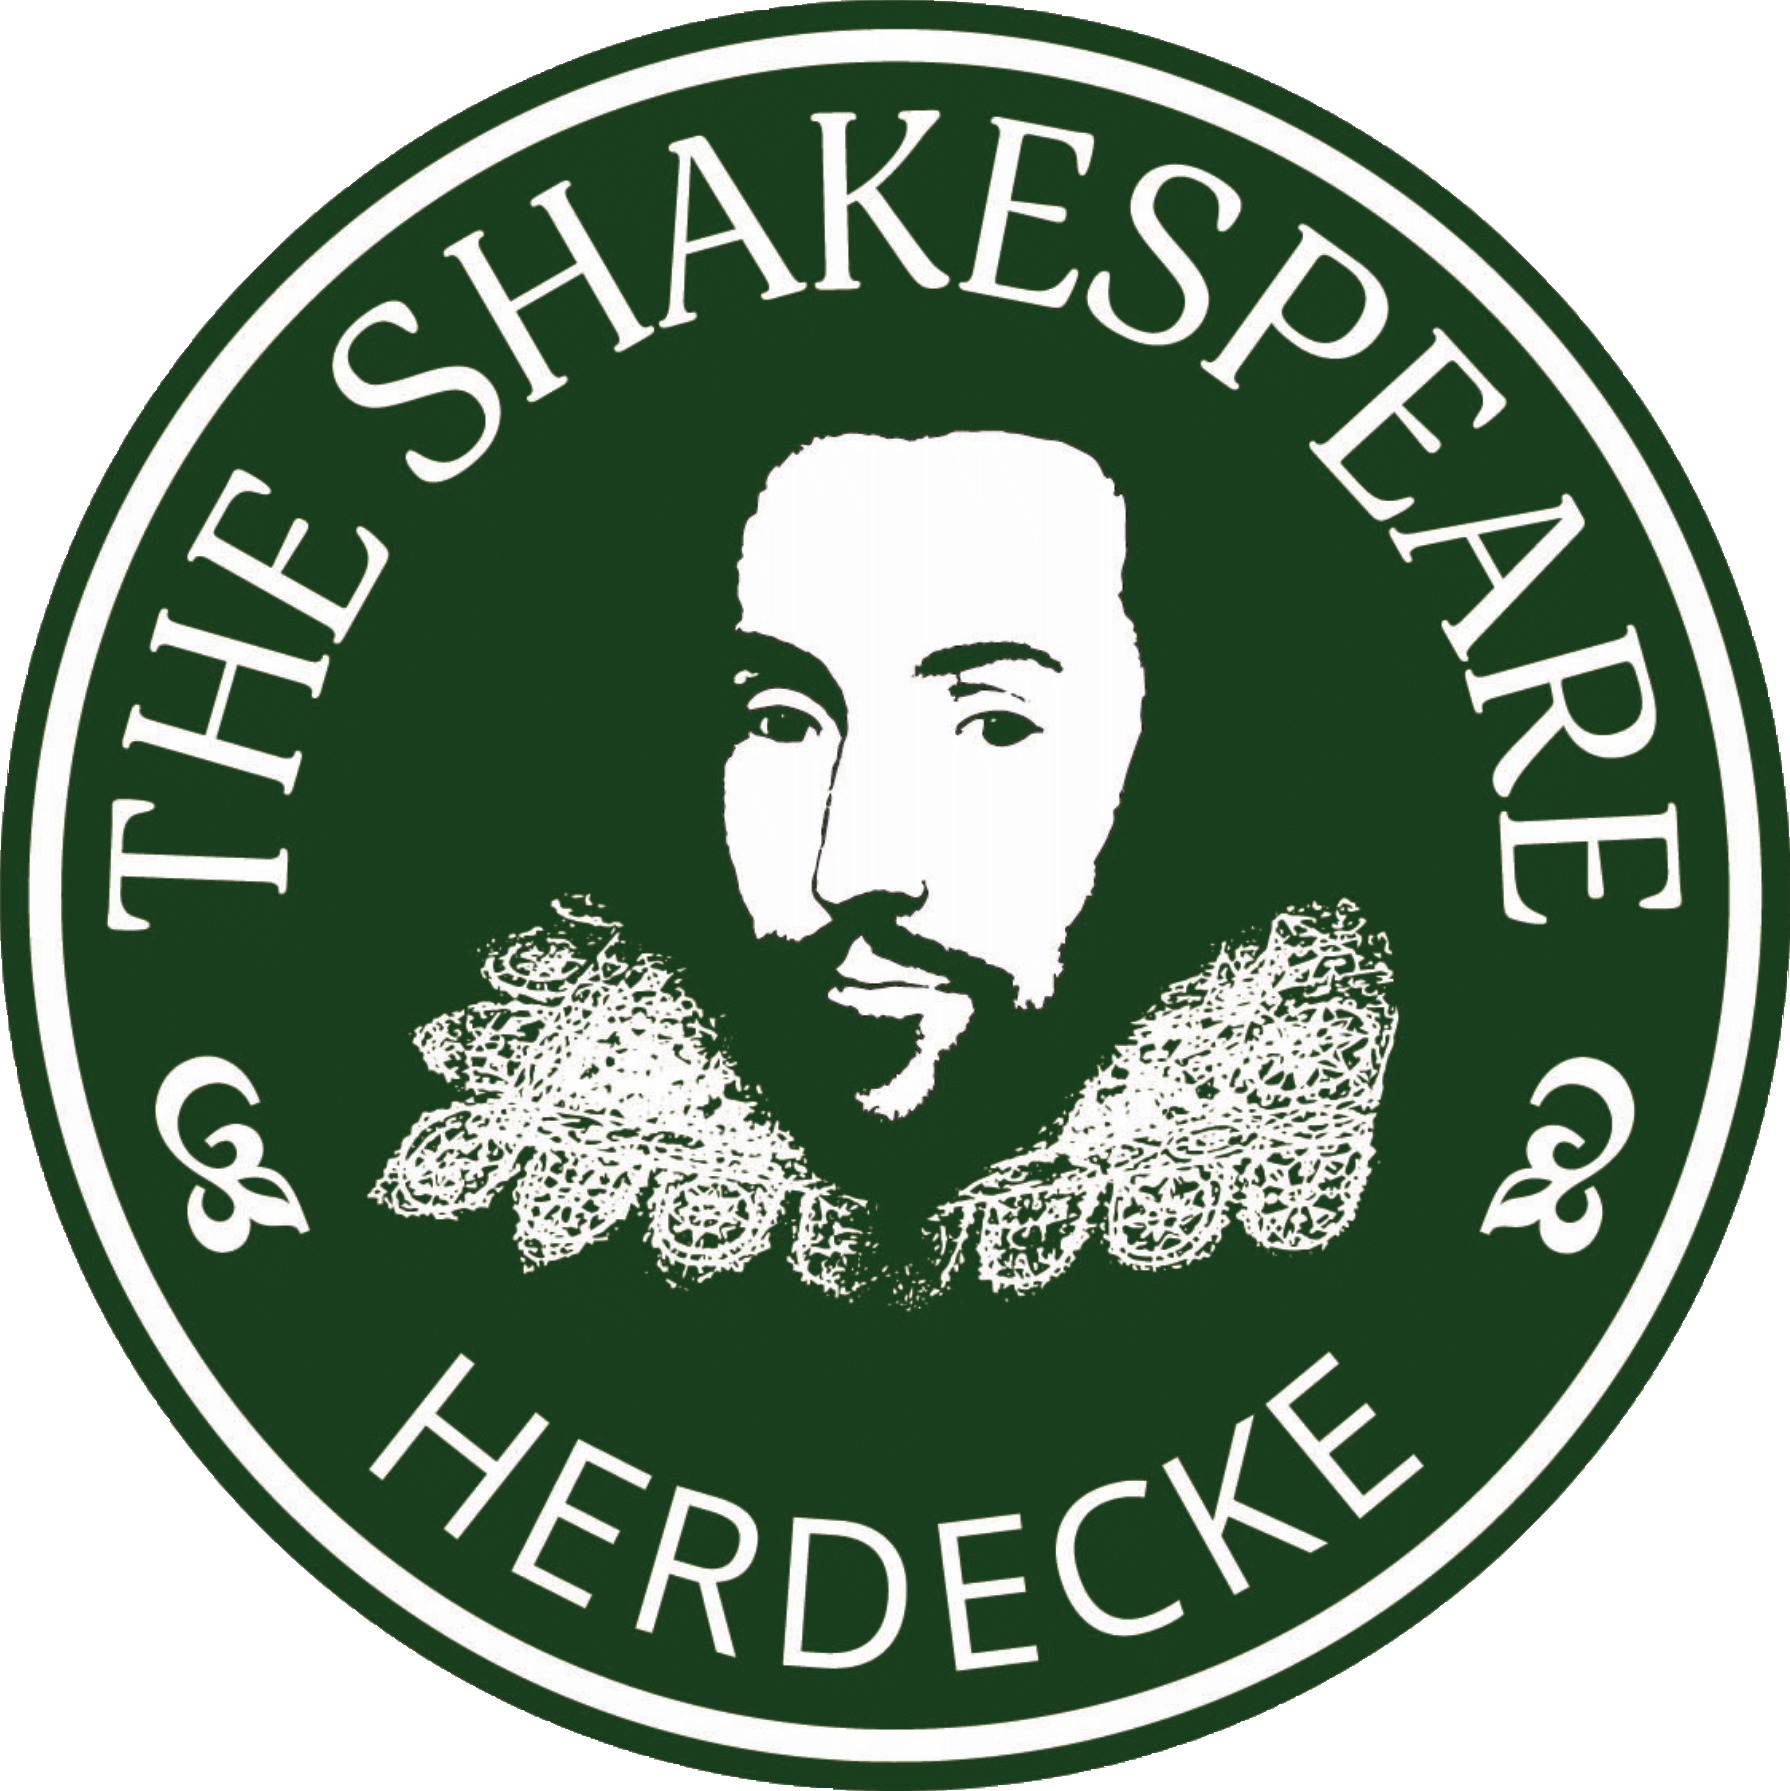 The Shakespeare Pub Herdecke